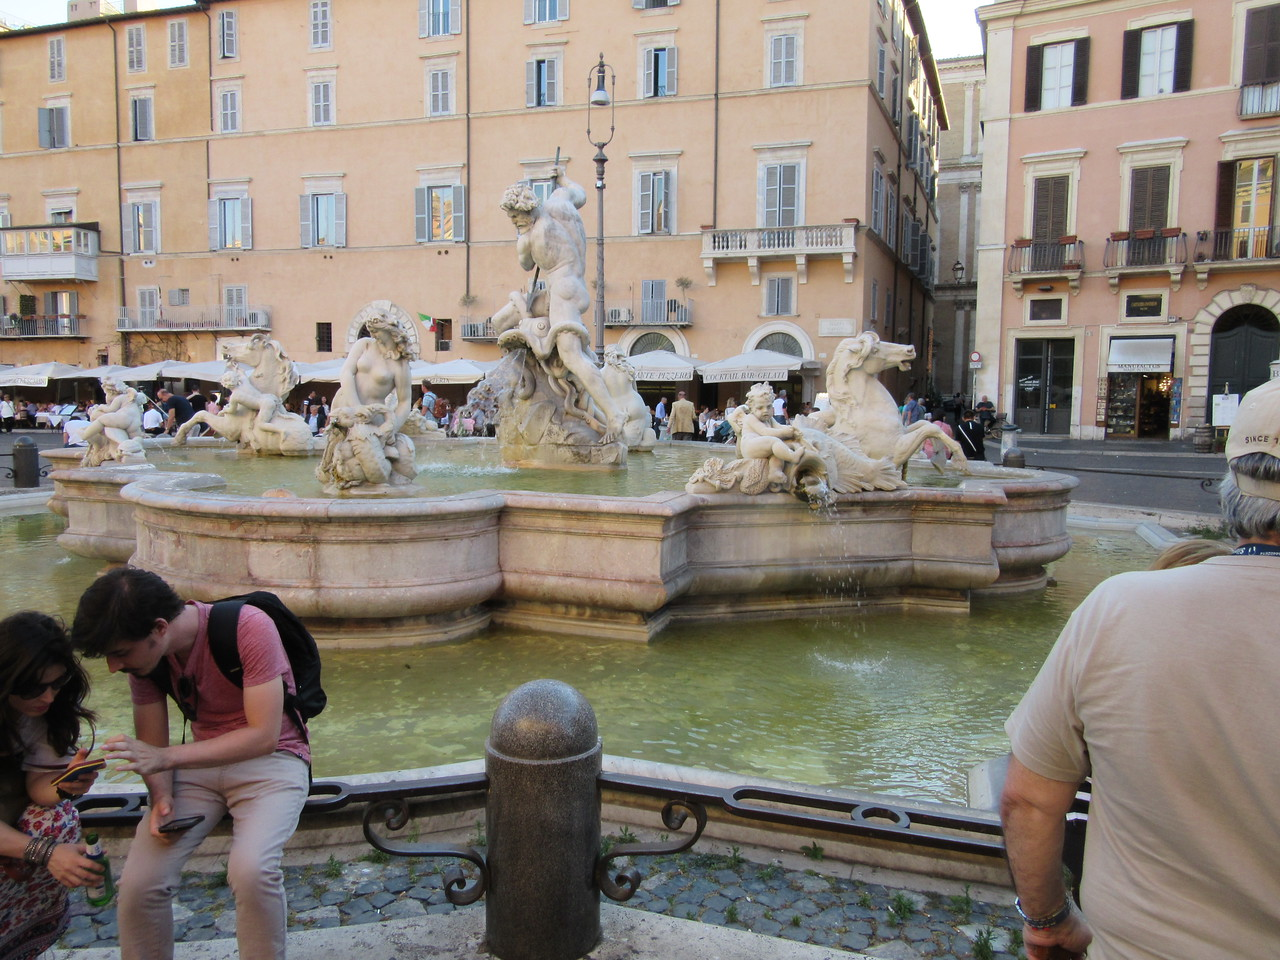 Fountain of the Four Rivers, Piazza Navona